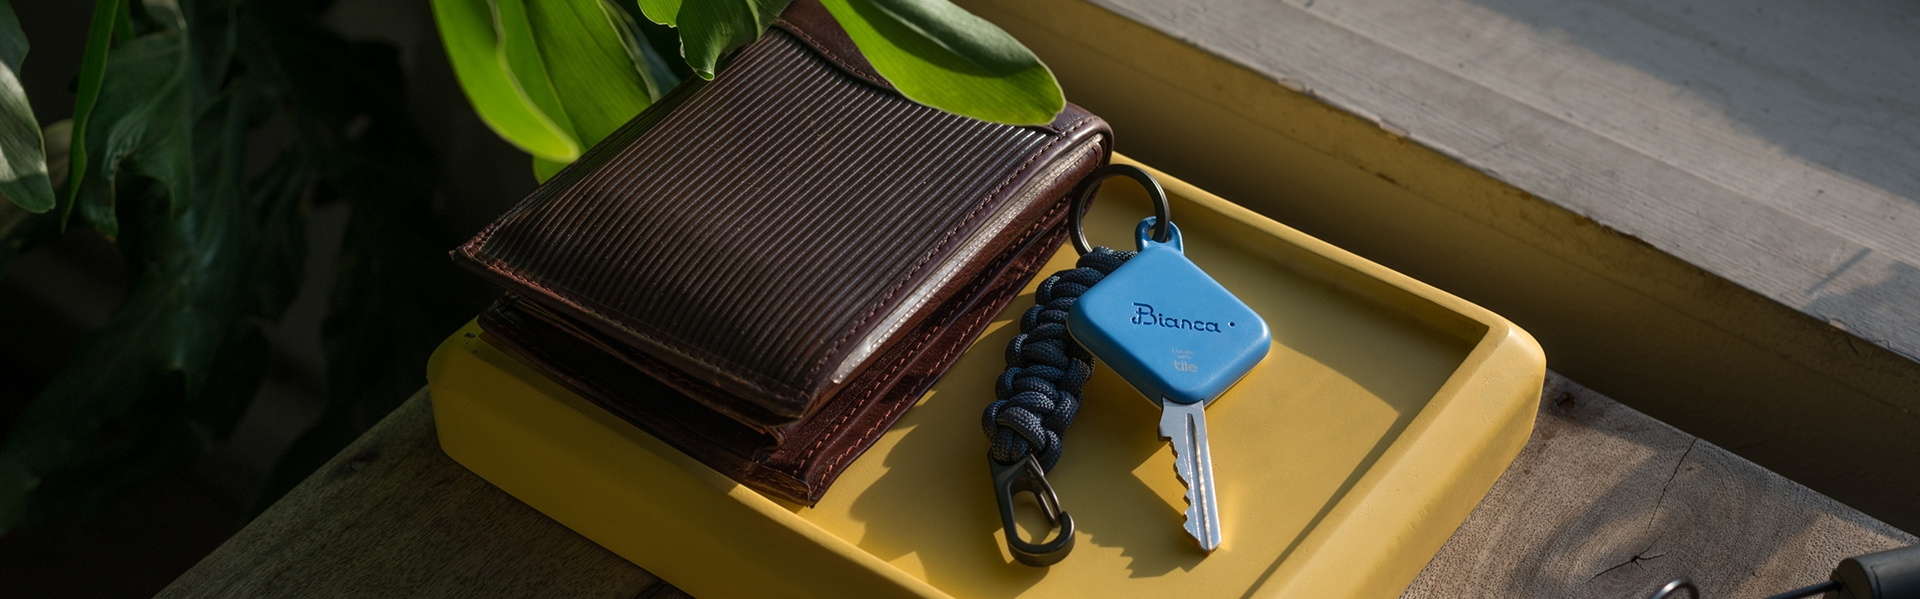 Tile Bianca Key now available at The Keyless Shop. Buy now only $25. Call 800-985-9531.